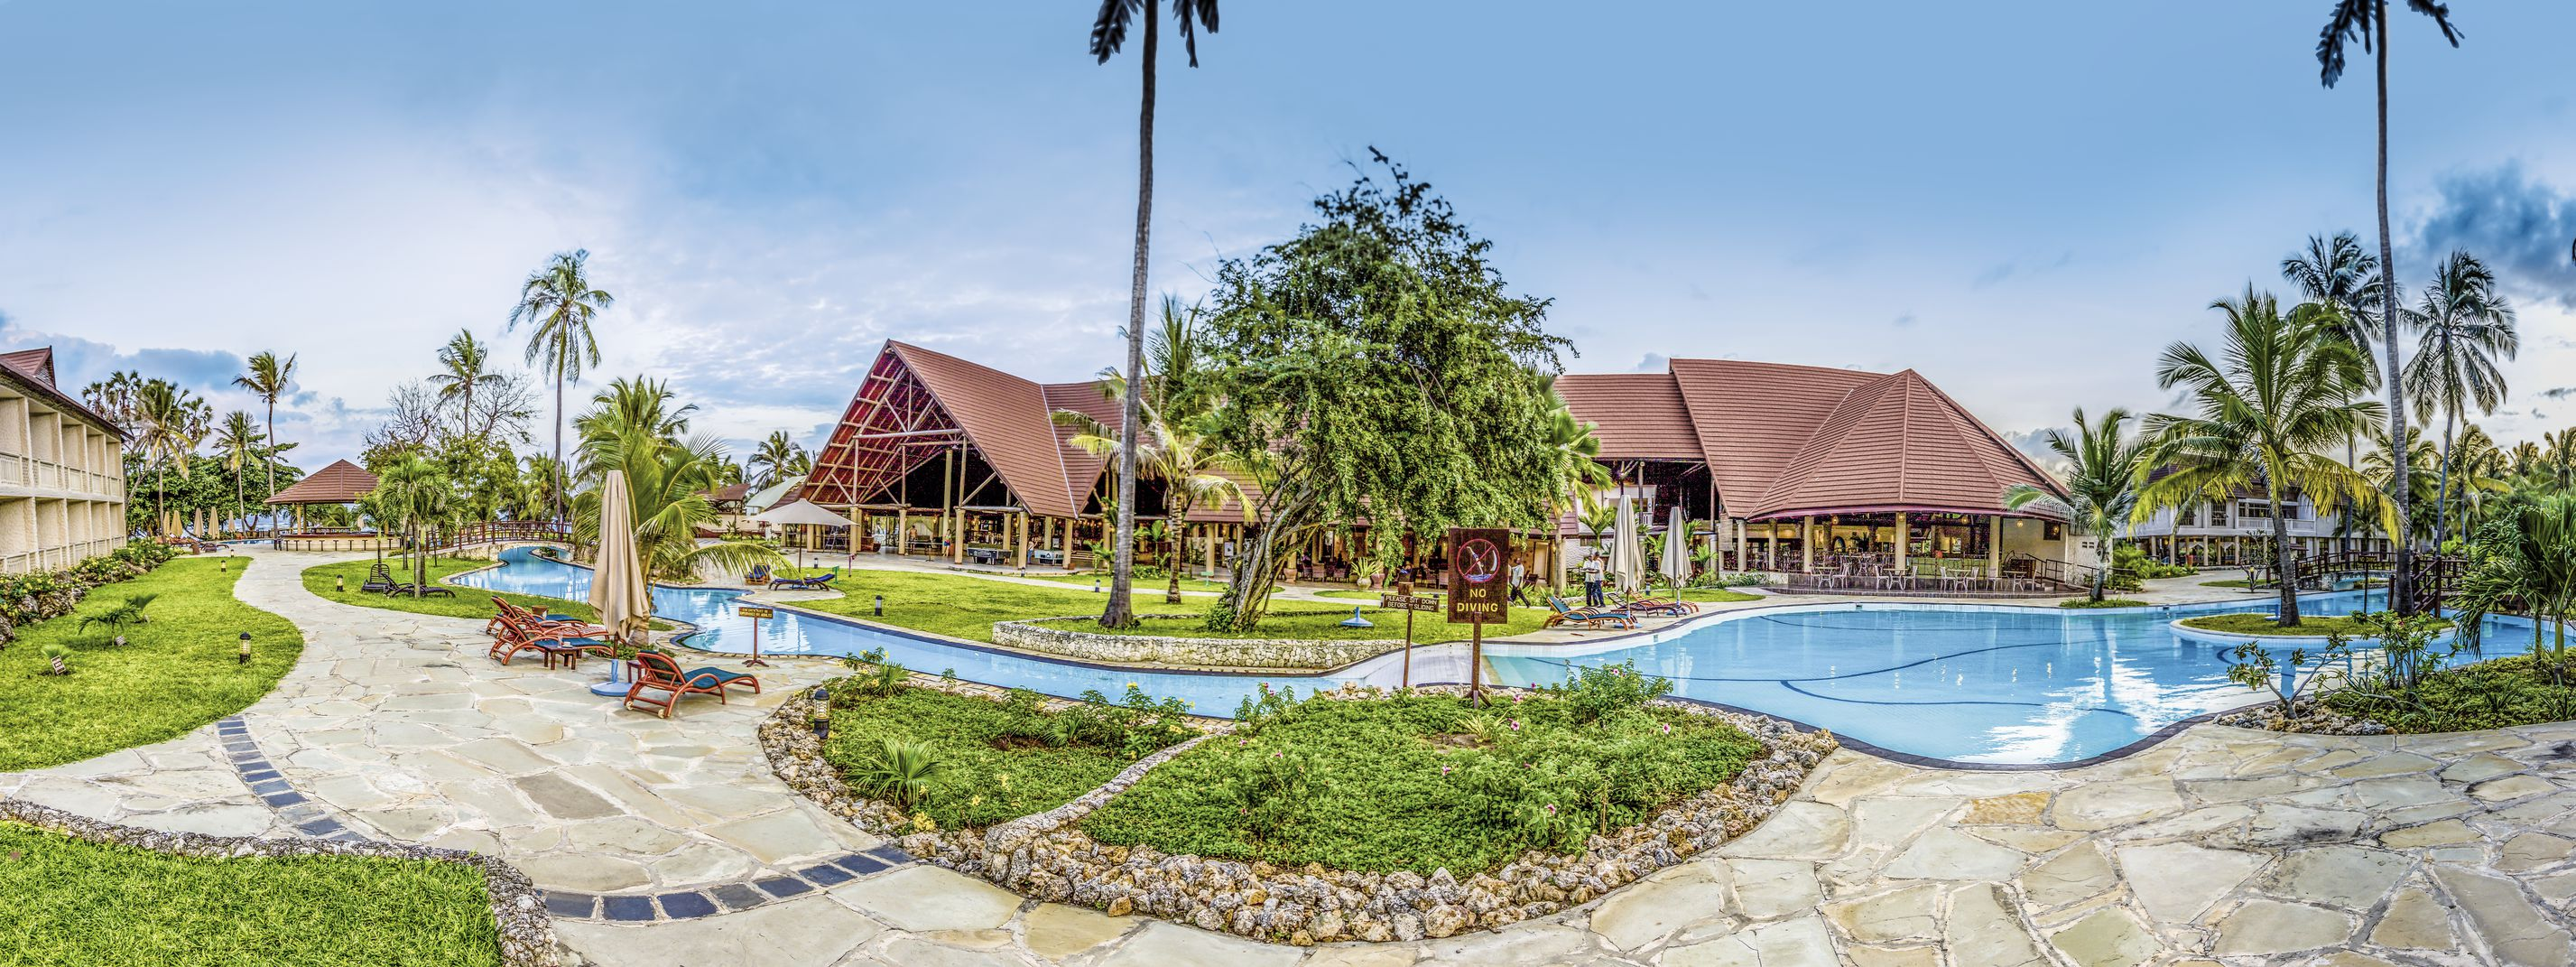 Amani Tiwi Beach Resort - chambre double low cost